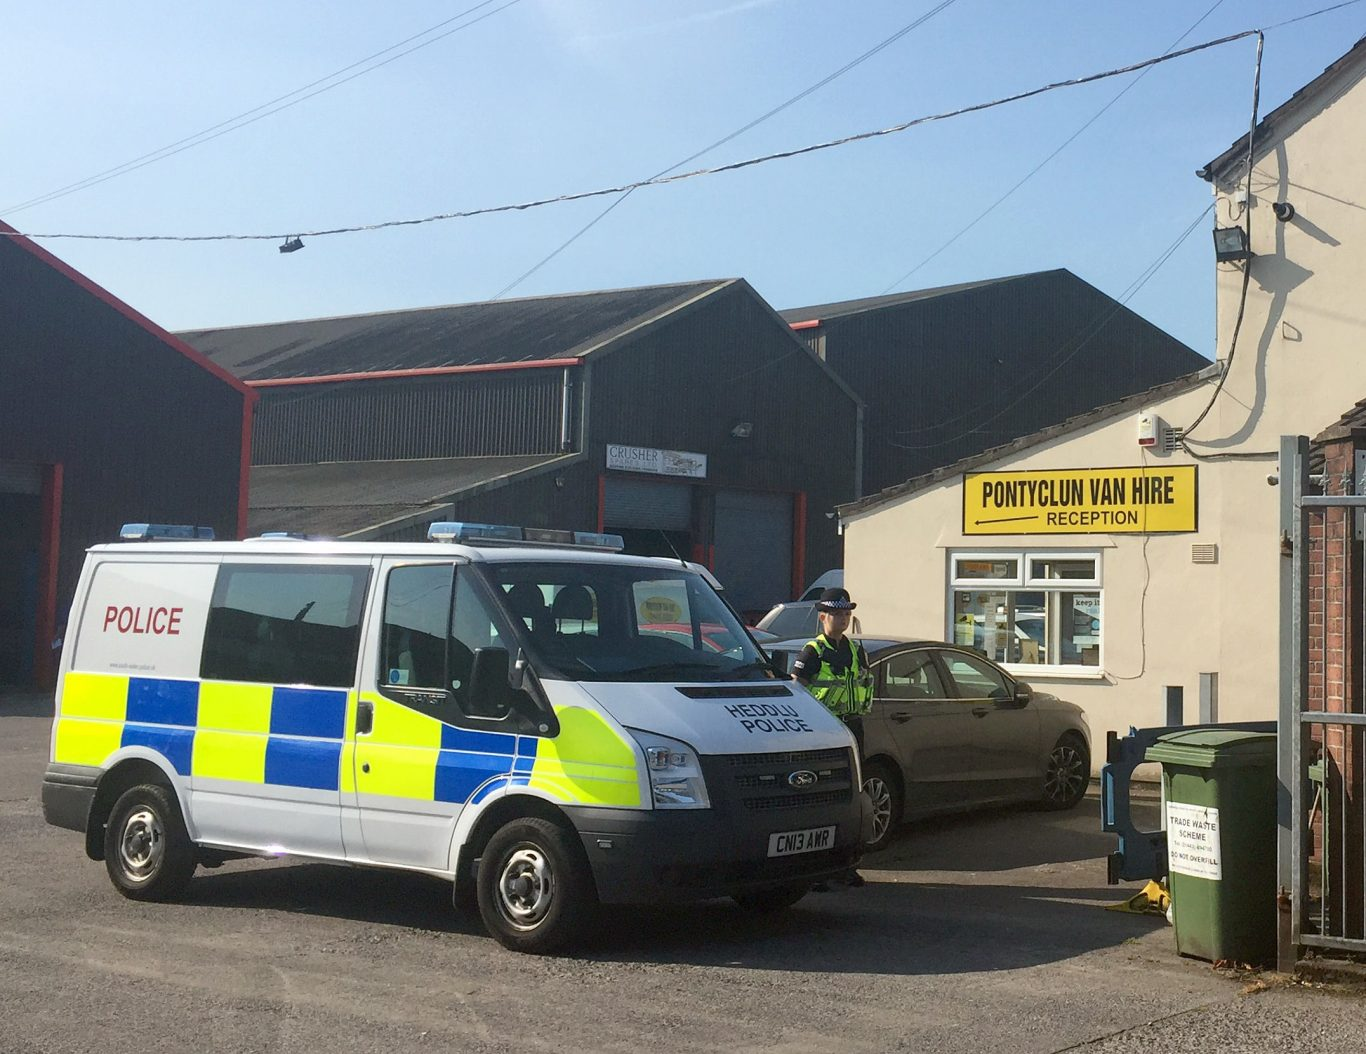 A police van outside Pontyclun Van Hire in Pontyclun, Mid Glamorgan. A van hired from the company was found in Finsbury Park (Claire Hayhurst/PA)